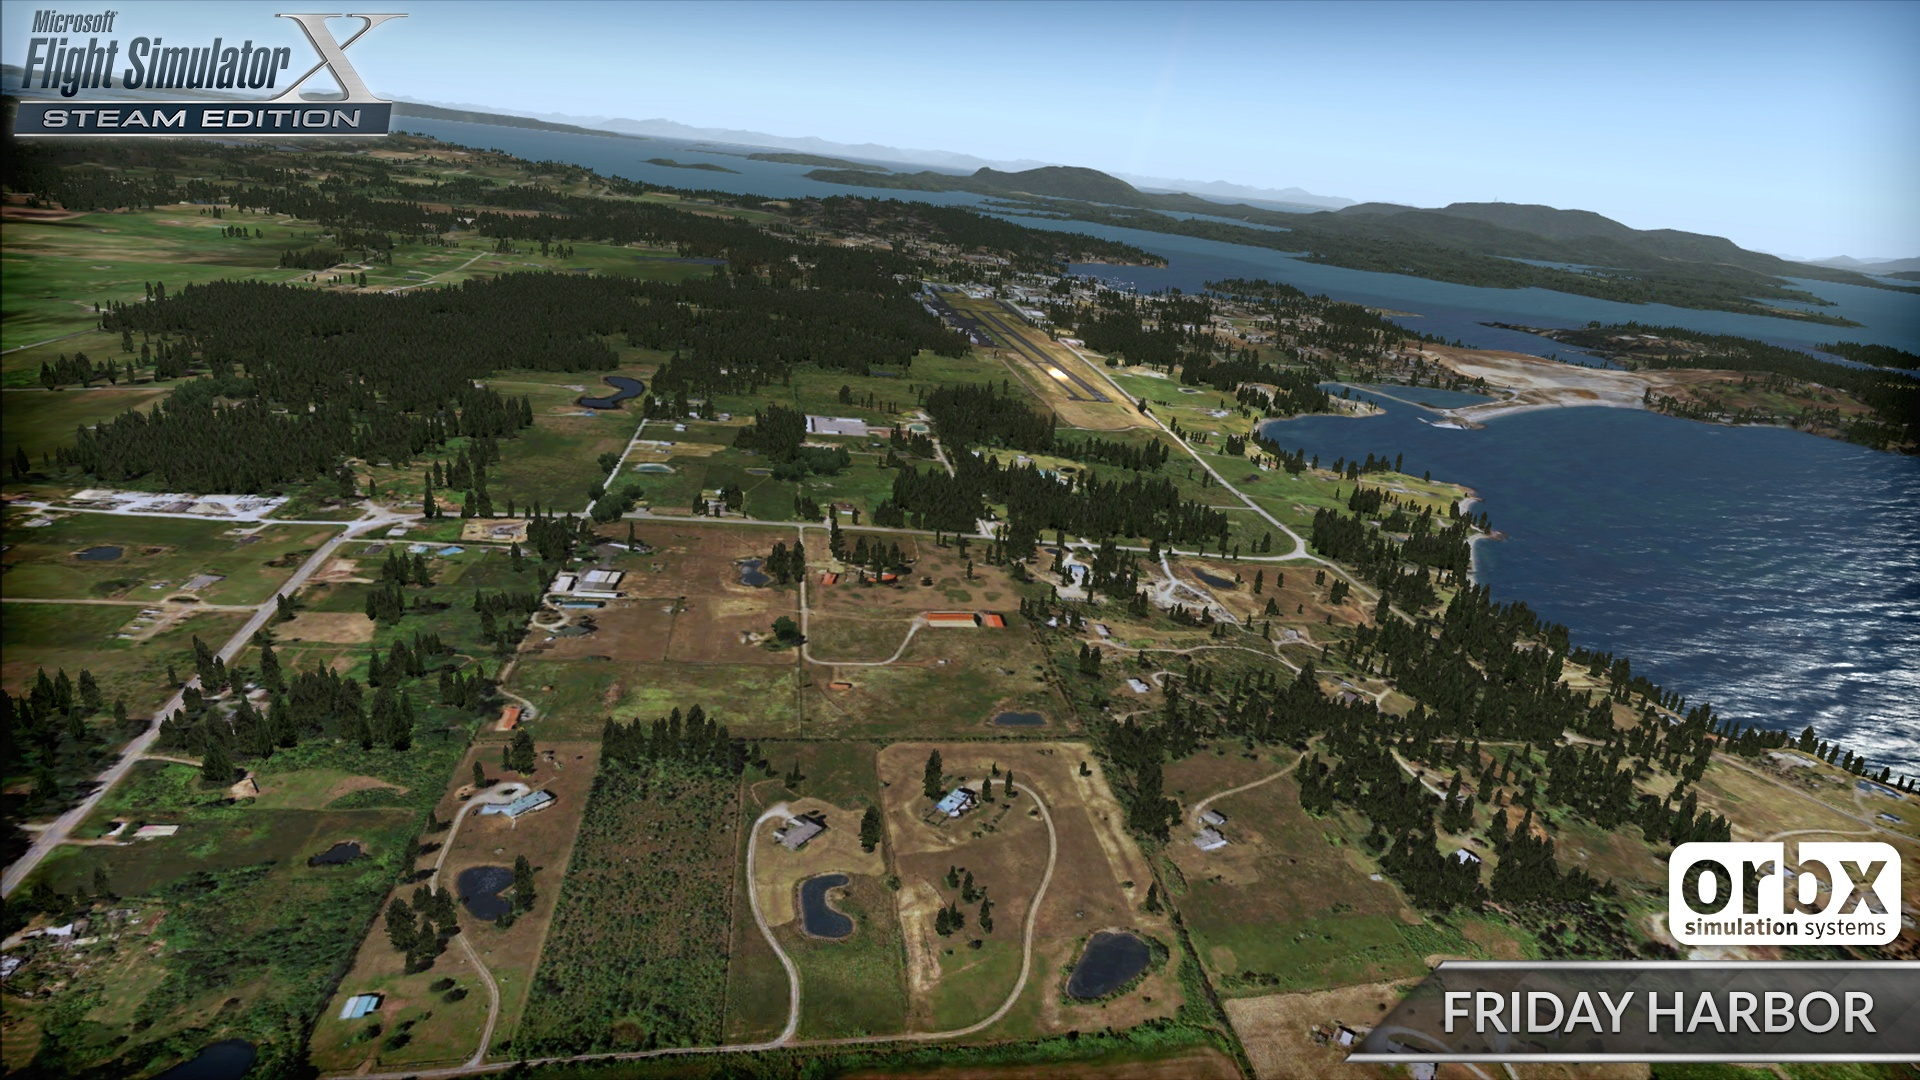 FSX Insider | First Orbx Airport Scenery Announced for FSX